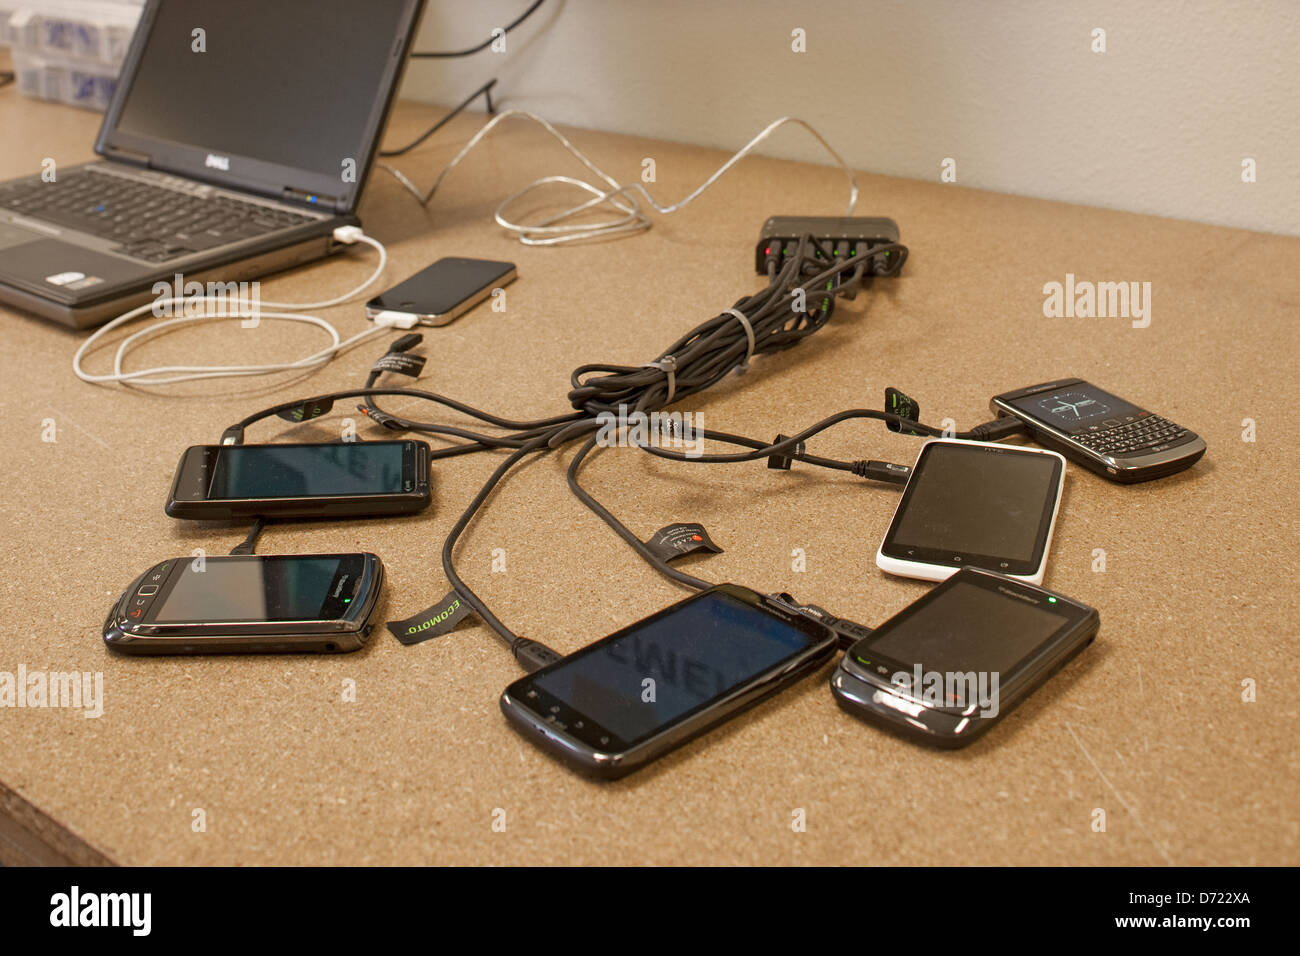 Cell phone testing and charging station at electronics recycling center. - Stock Image